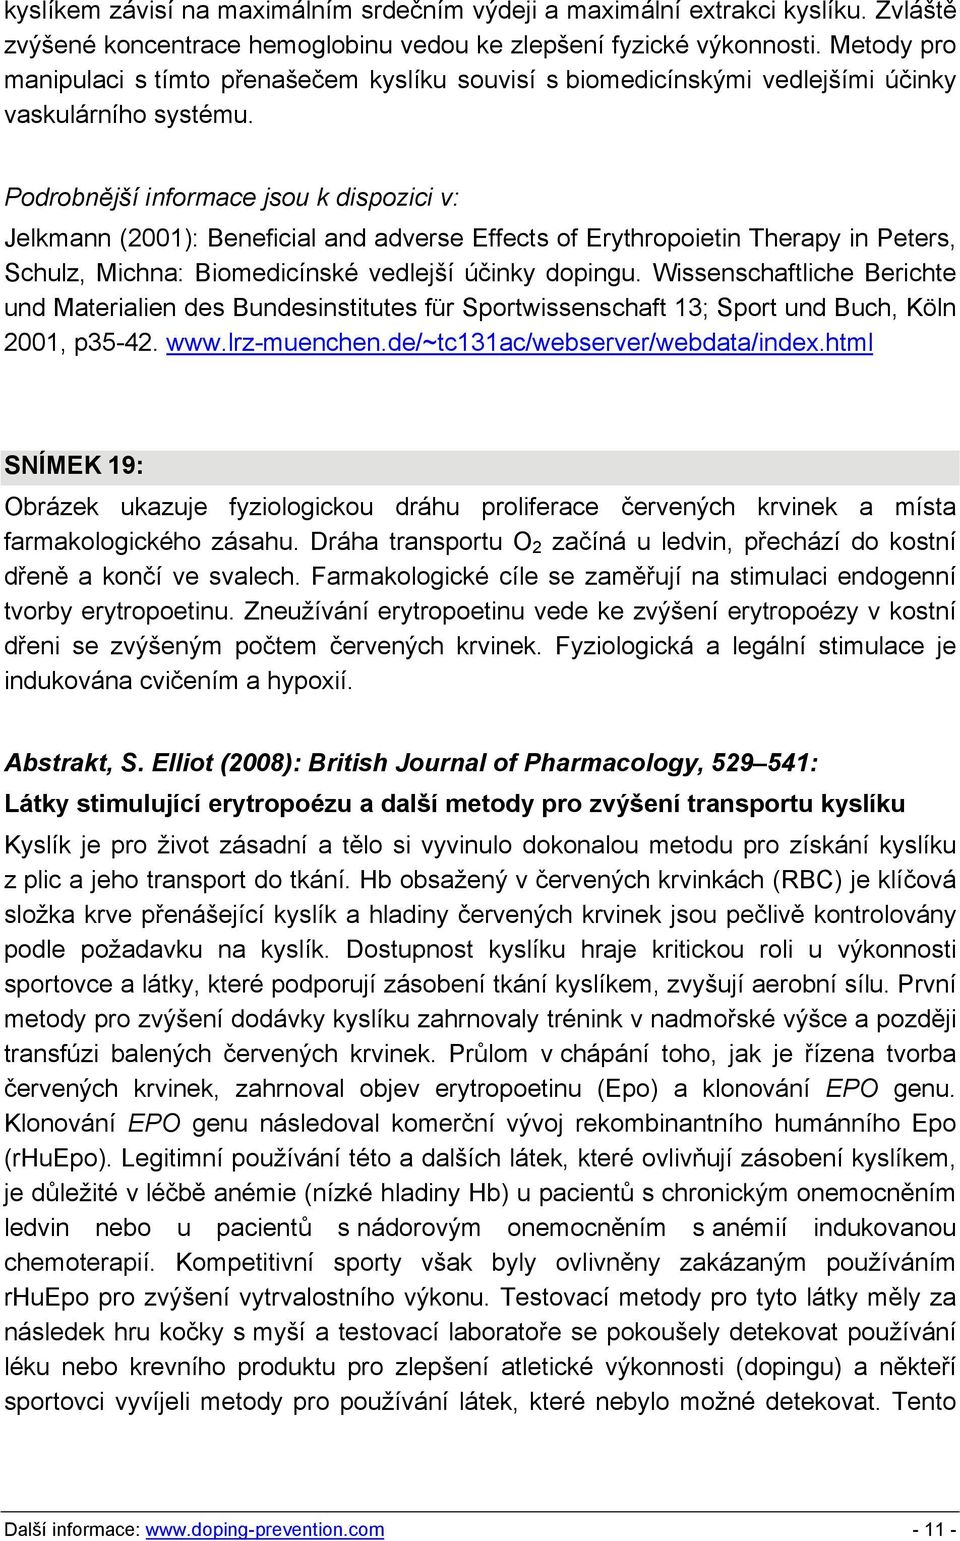 Jelkmann (2001): Beneficial and adverse Effects of Erythropoietin Therapy in Peters, Schulz, Michna: Biomedicínské vedlejší účinky dopingu.